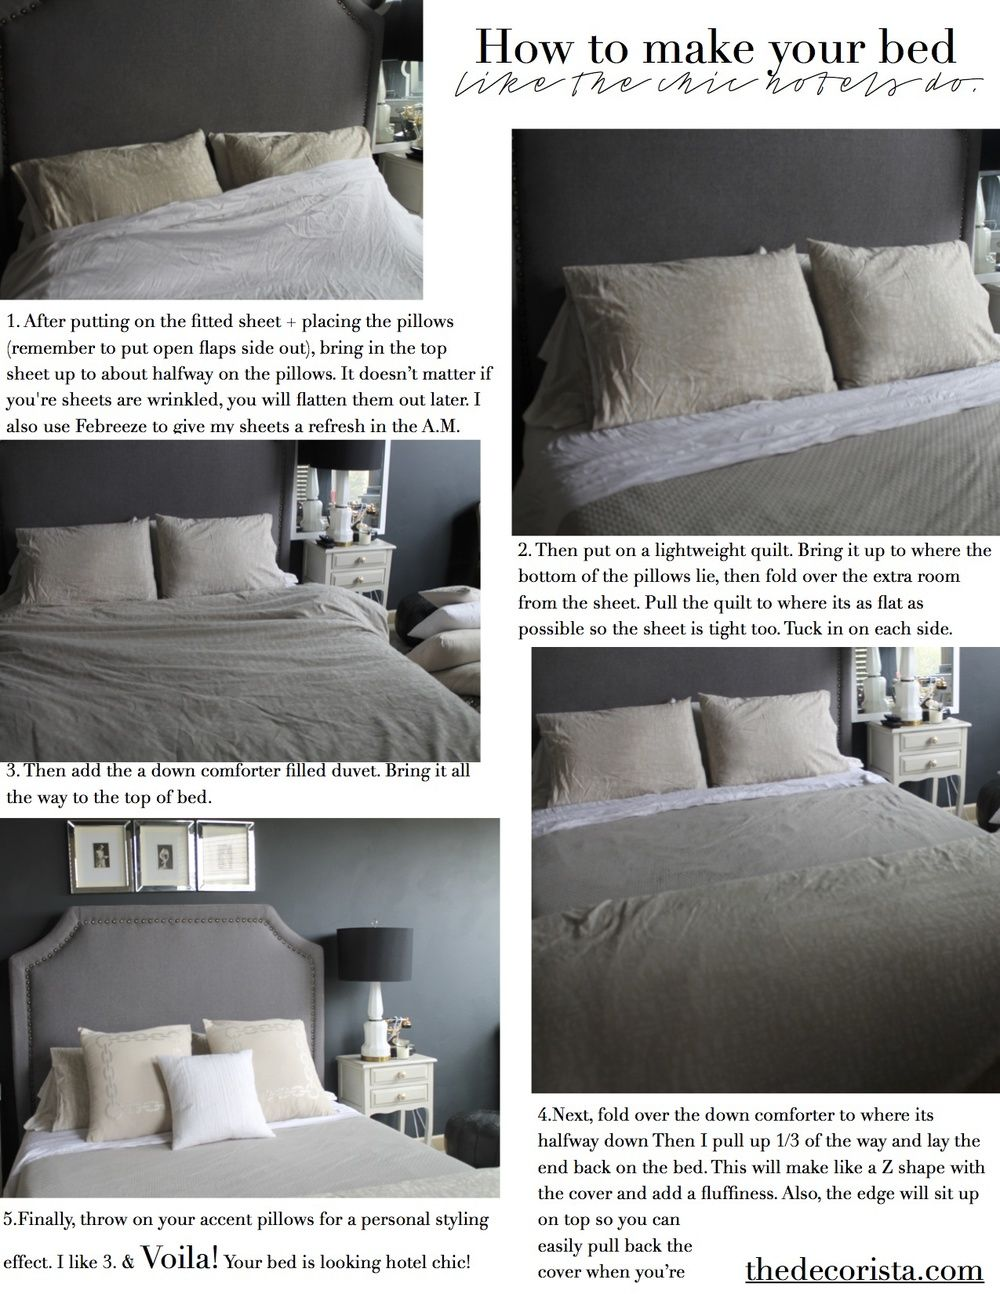 How To Make Your Bed The Hotel Way Decorista